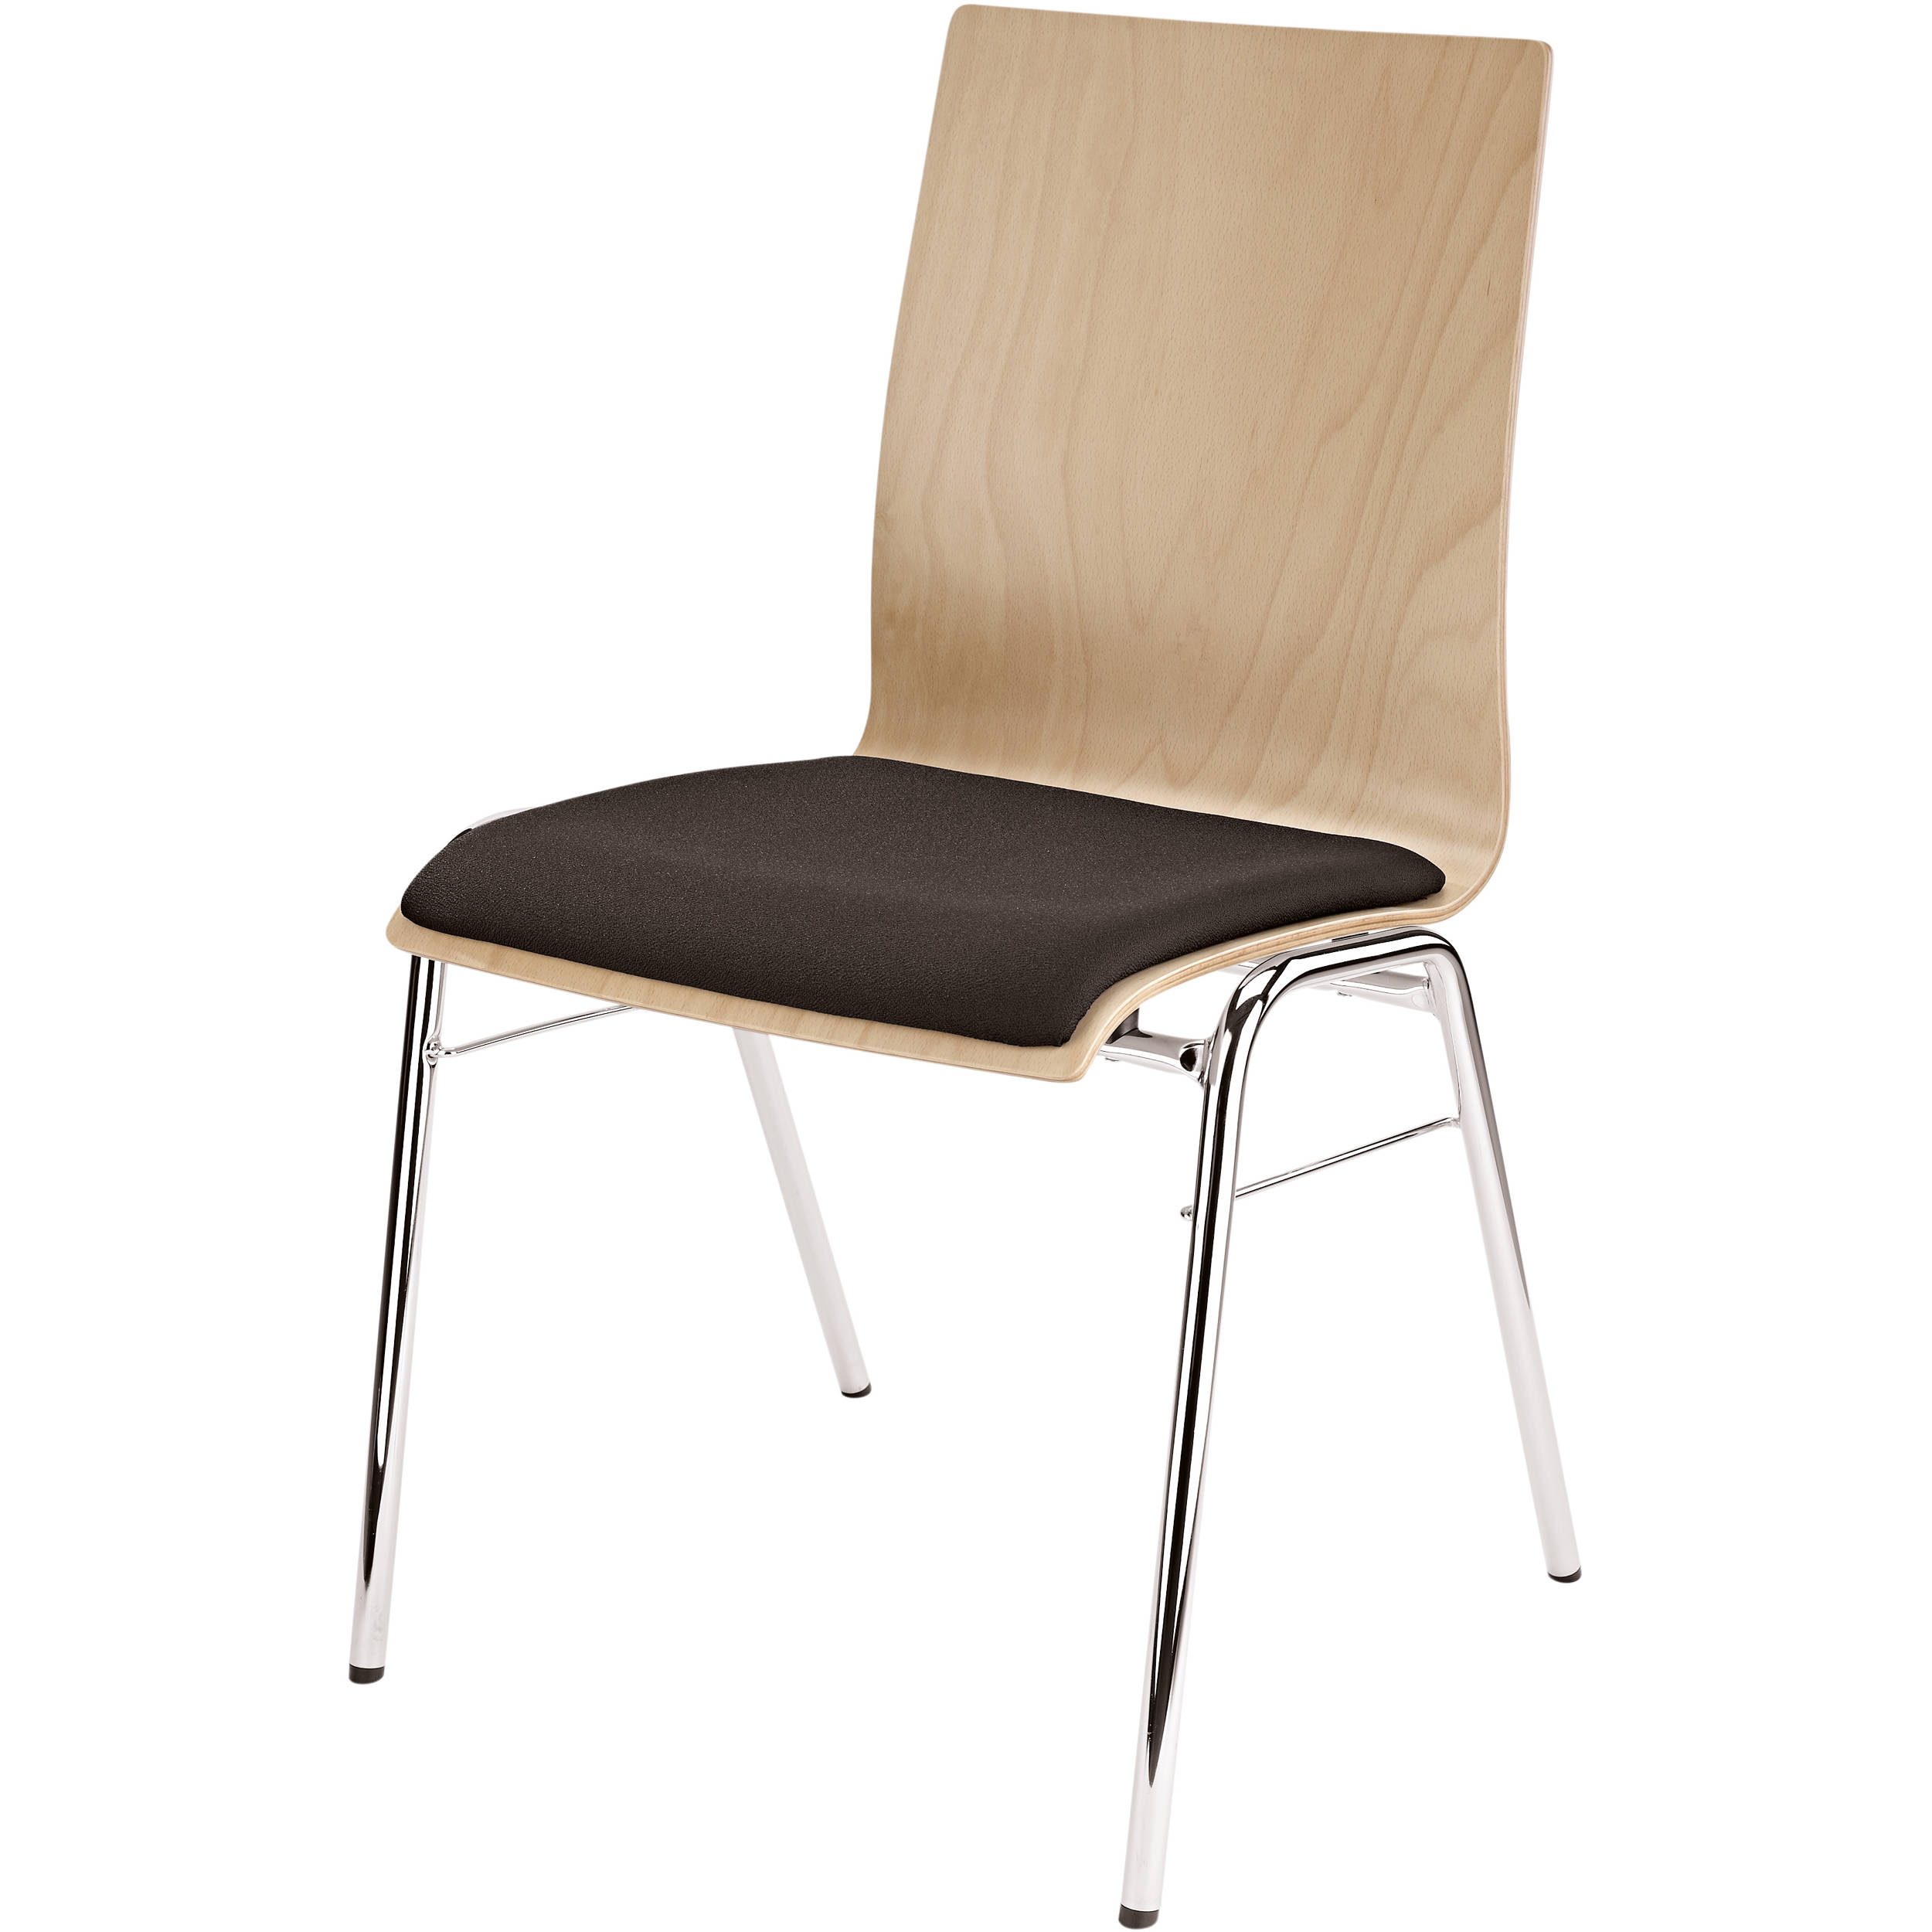 K M Stacking Chair With Black Seat Cushion Natural